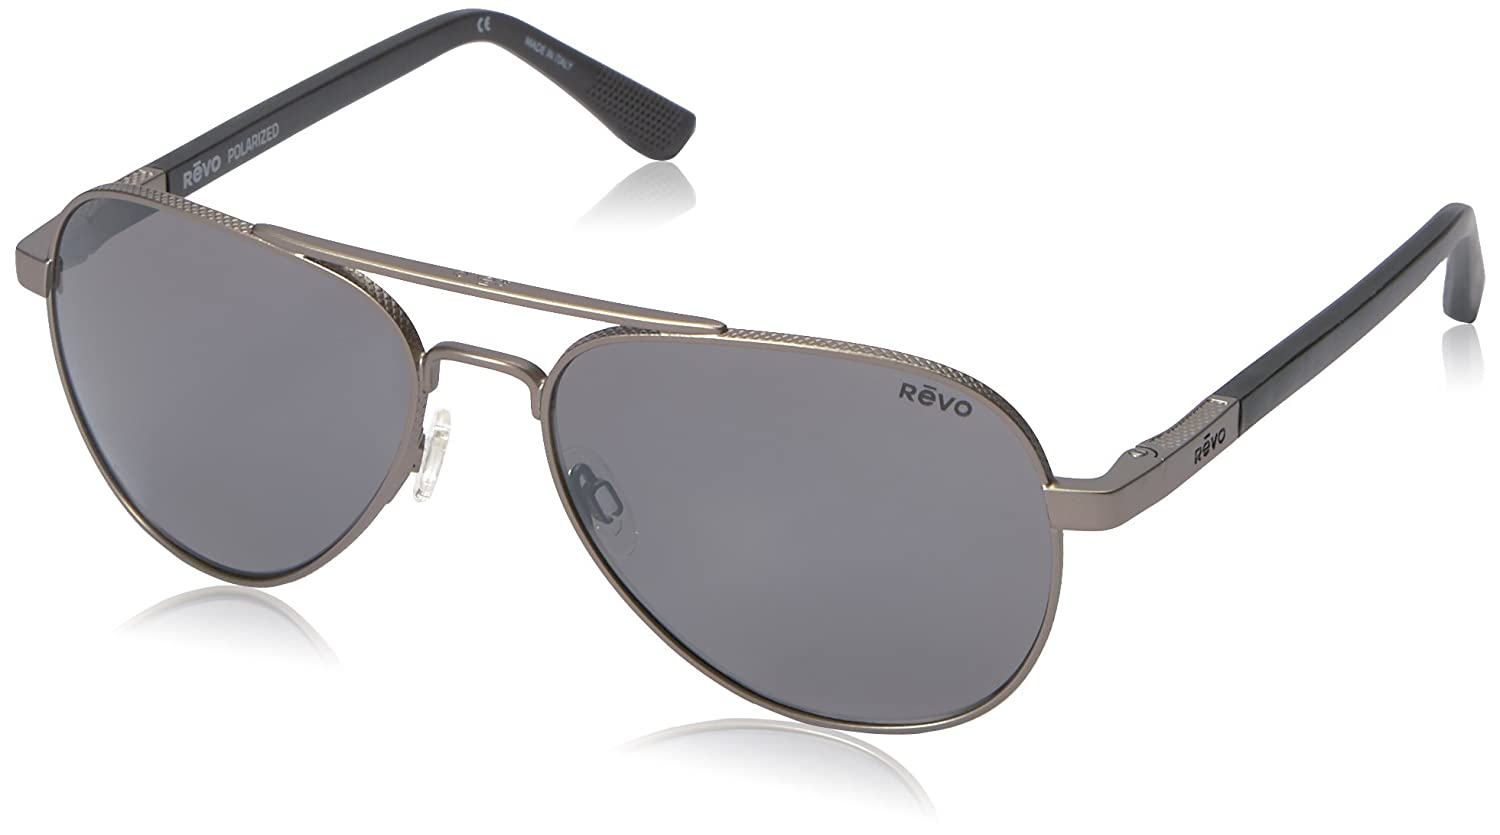 cd2a660dbdc Amazon.com  Revo Raconteur RE 1011 00 GY Polarized Aviator Sunglasses